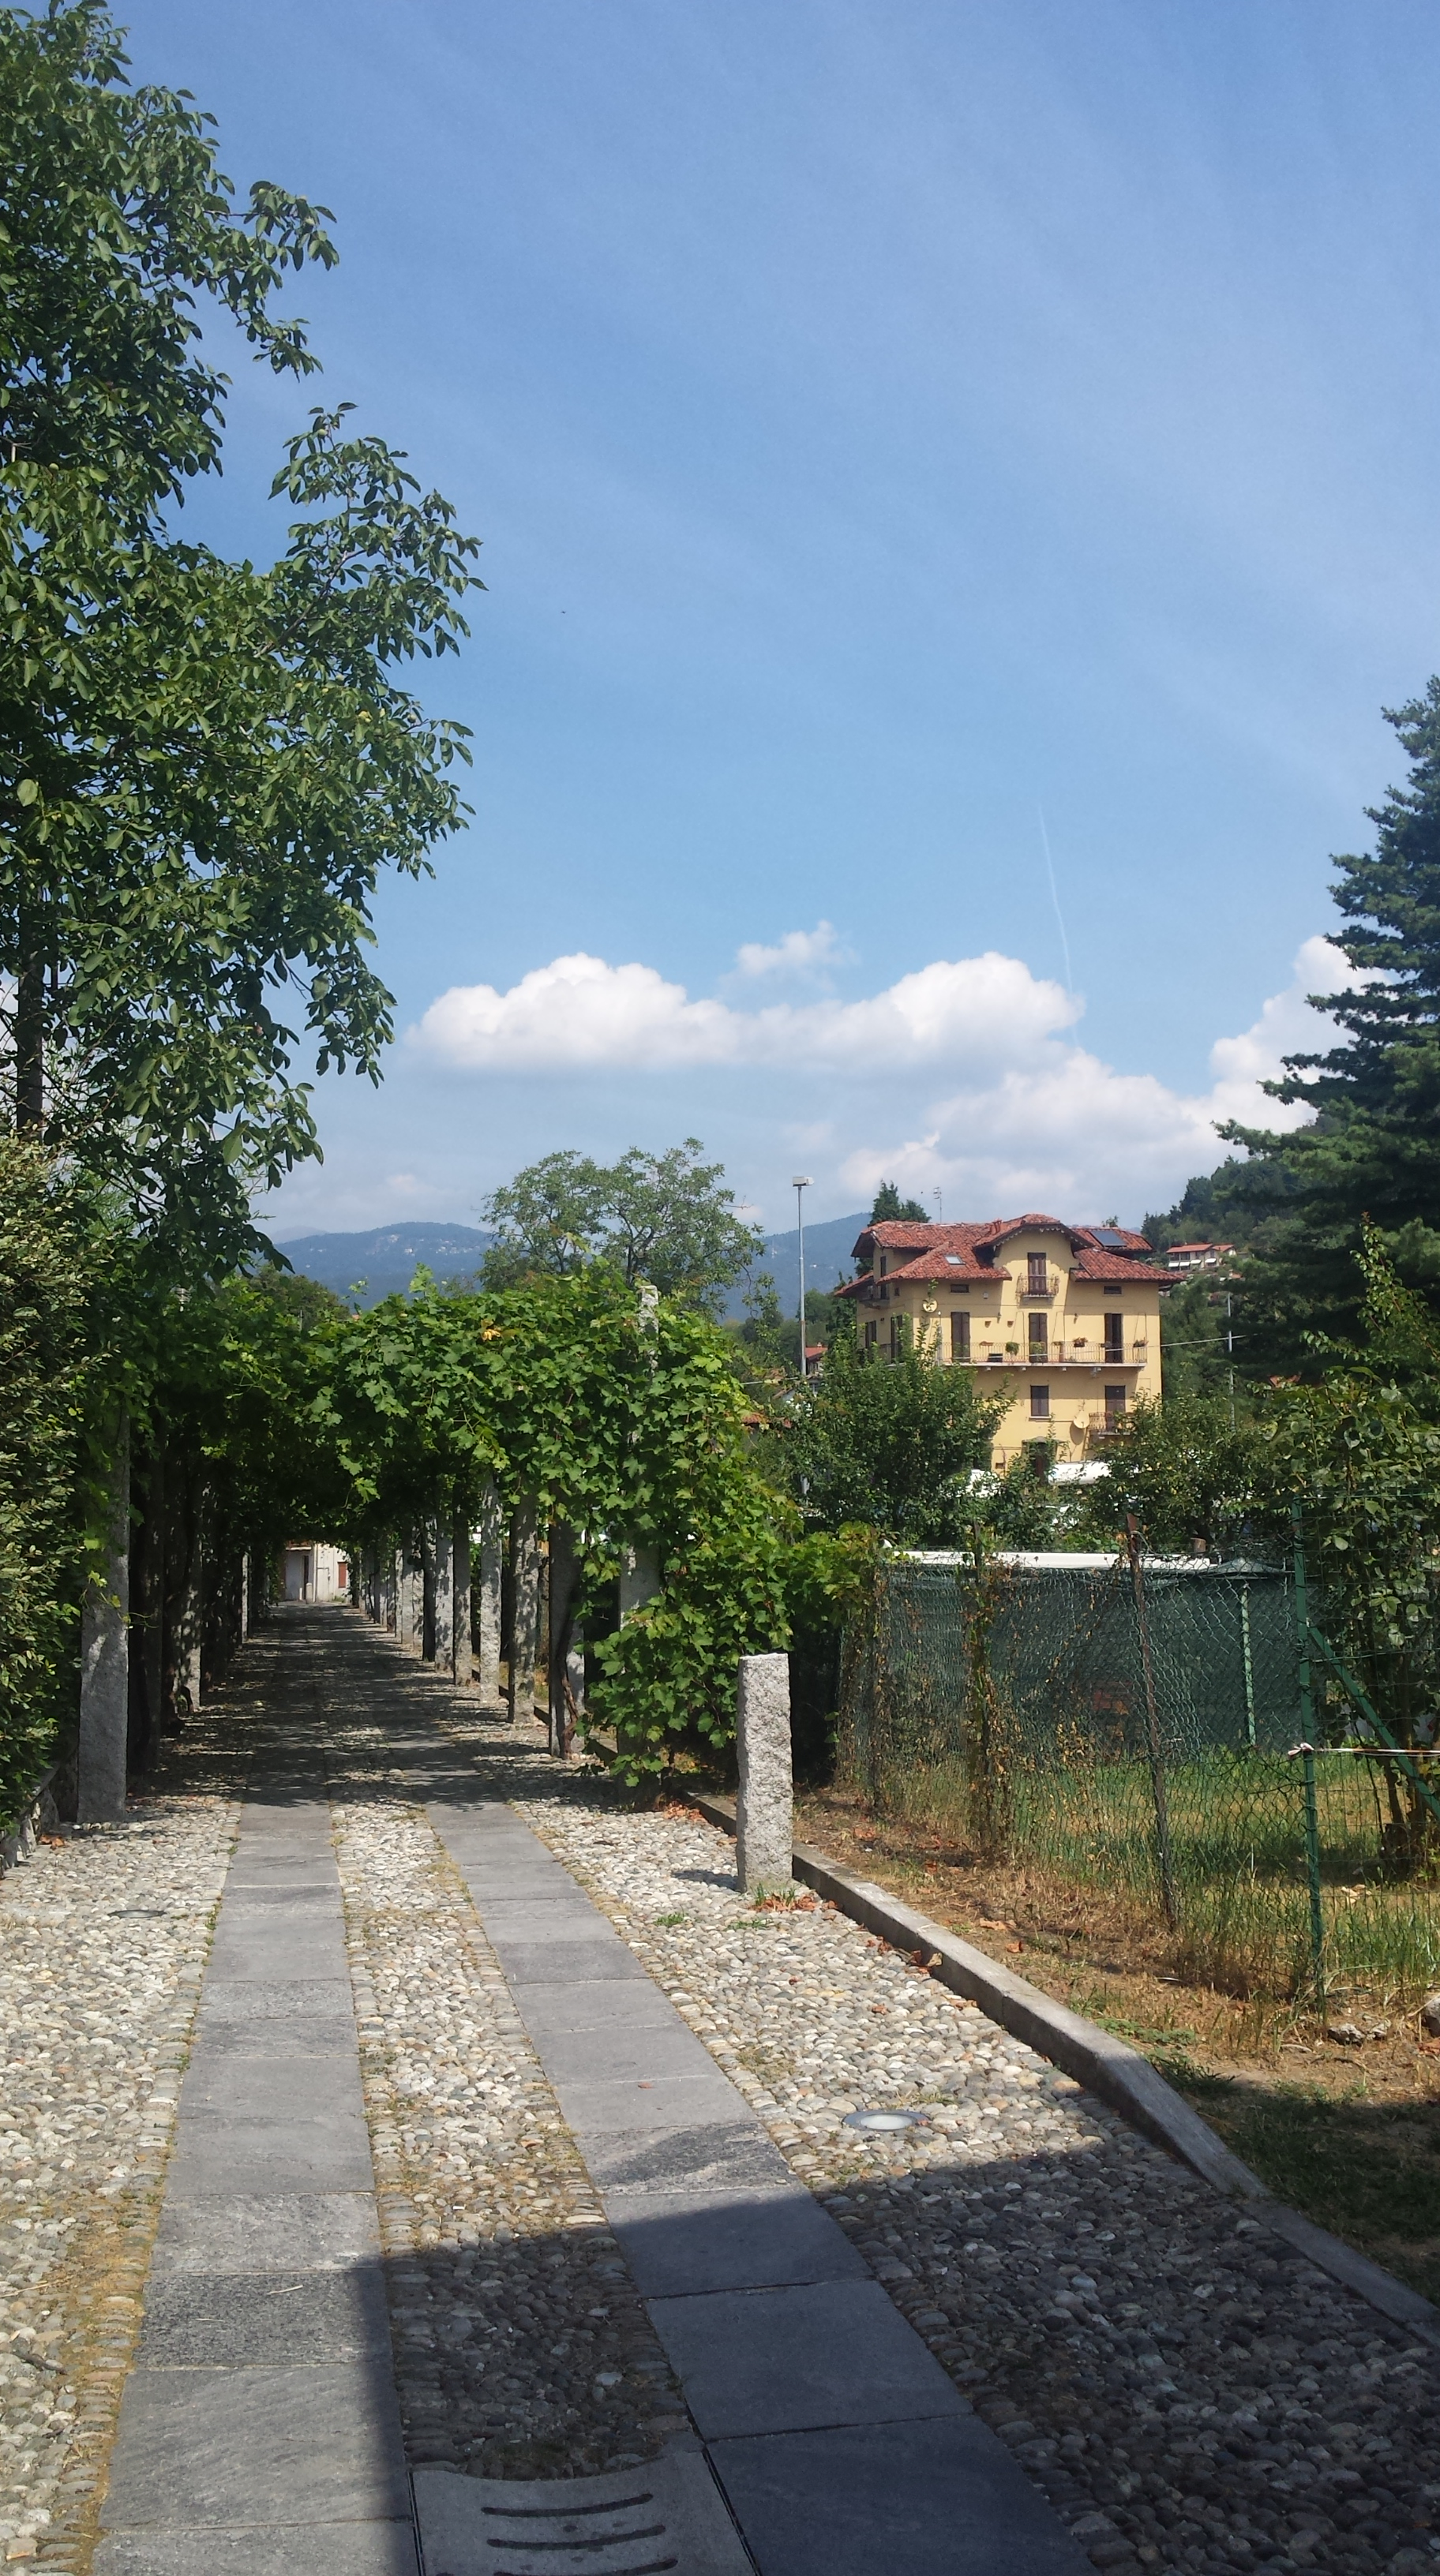 A photo of one of our trips to Italy, a gorgeous yellow house with a red roof stands in front of a mountain range and some blue blue sky. Travel adventures.